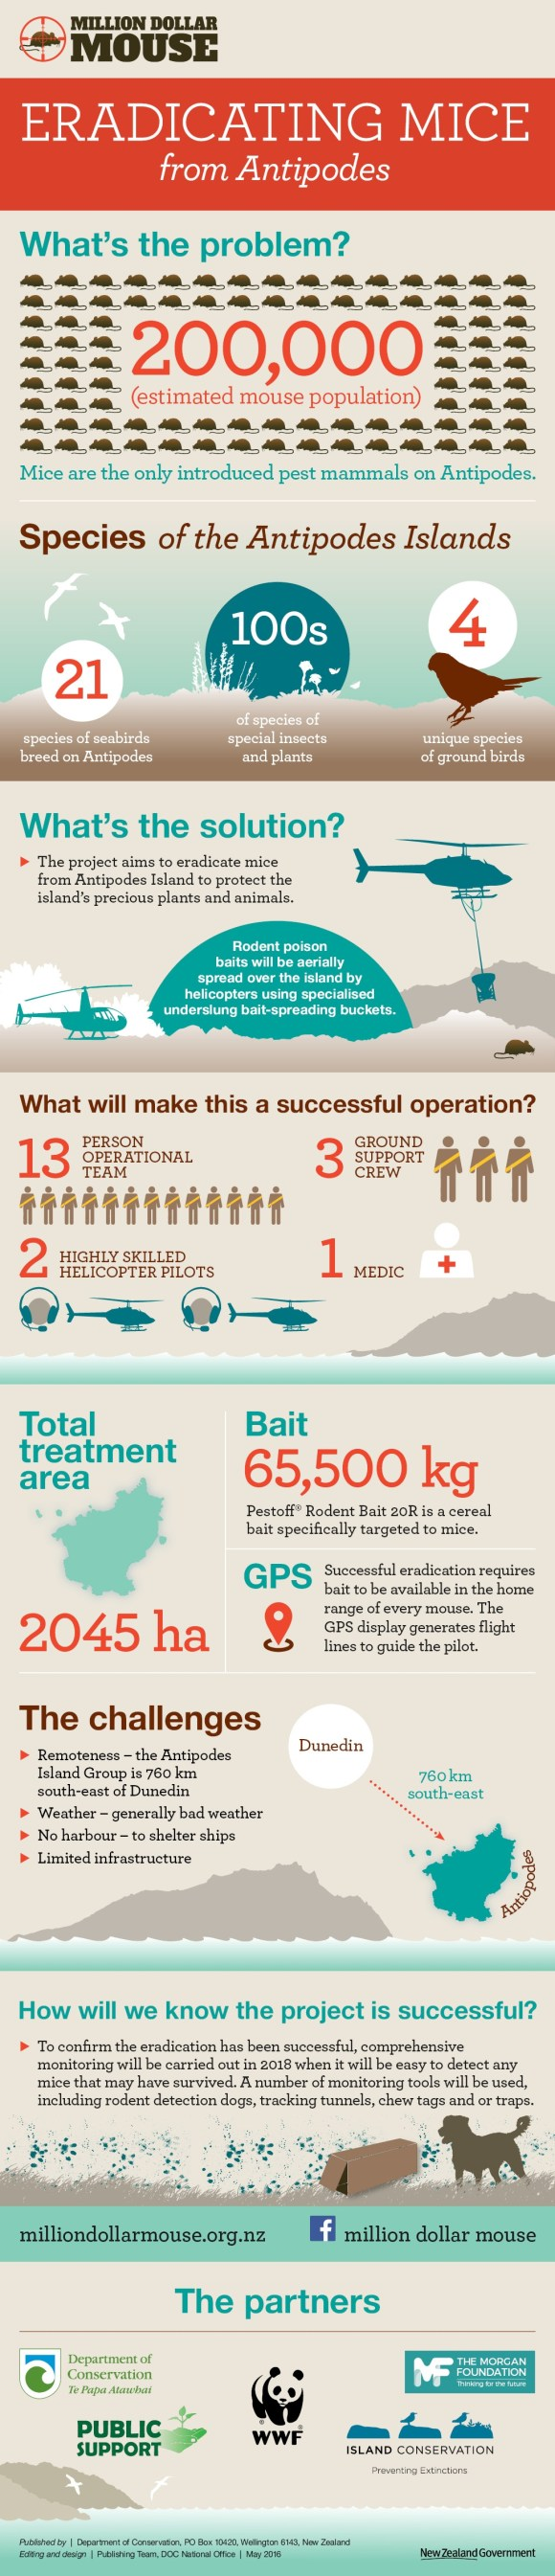 million-dollar-mouse-infographic